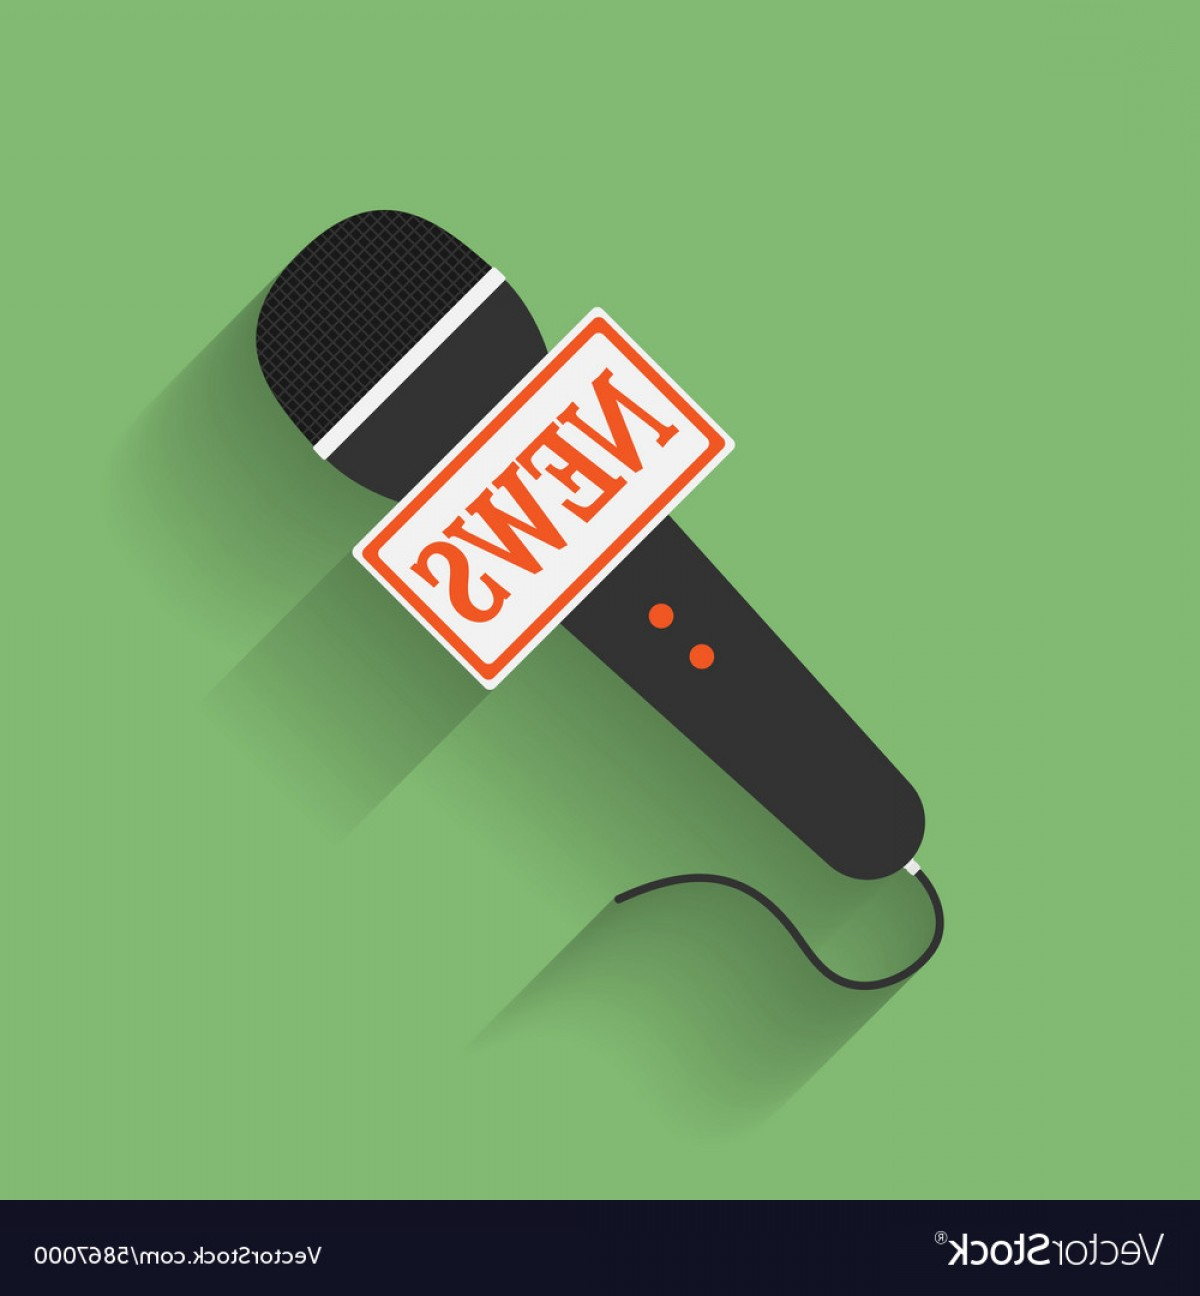 News Microphone Icon Vector: Icon Of Microphone Press Or News Microphone Flat Vector